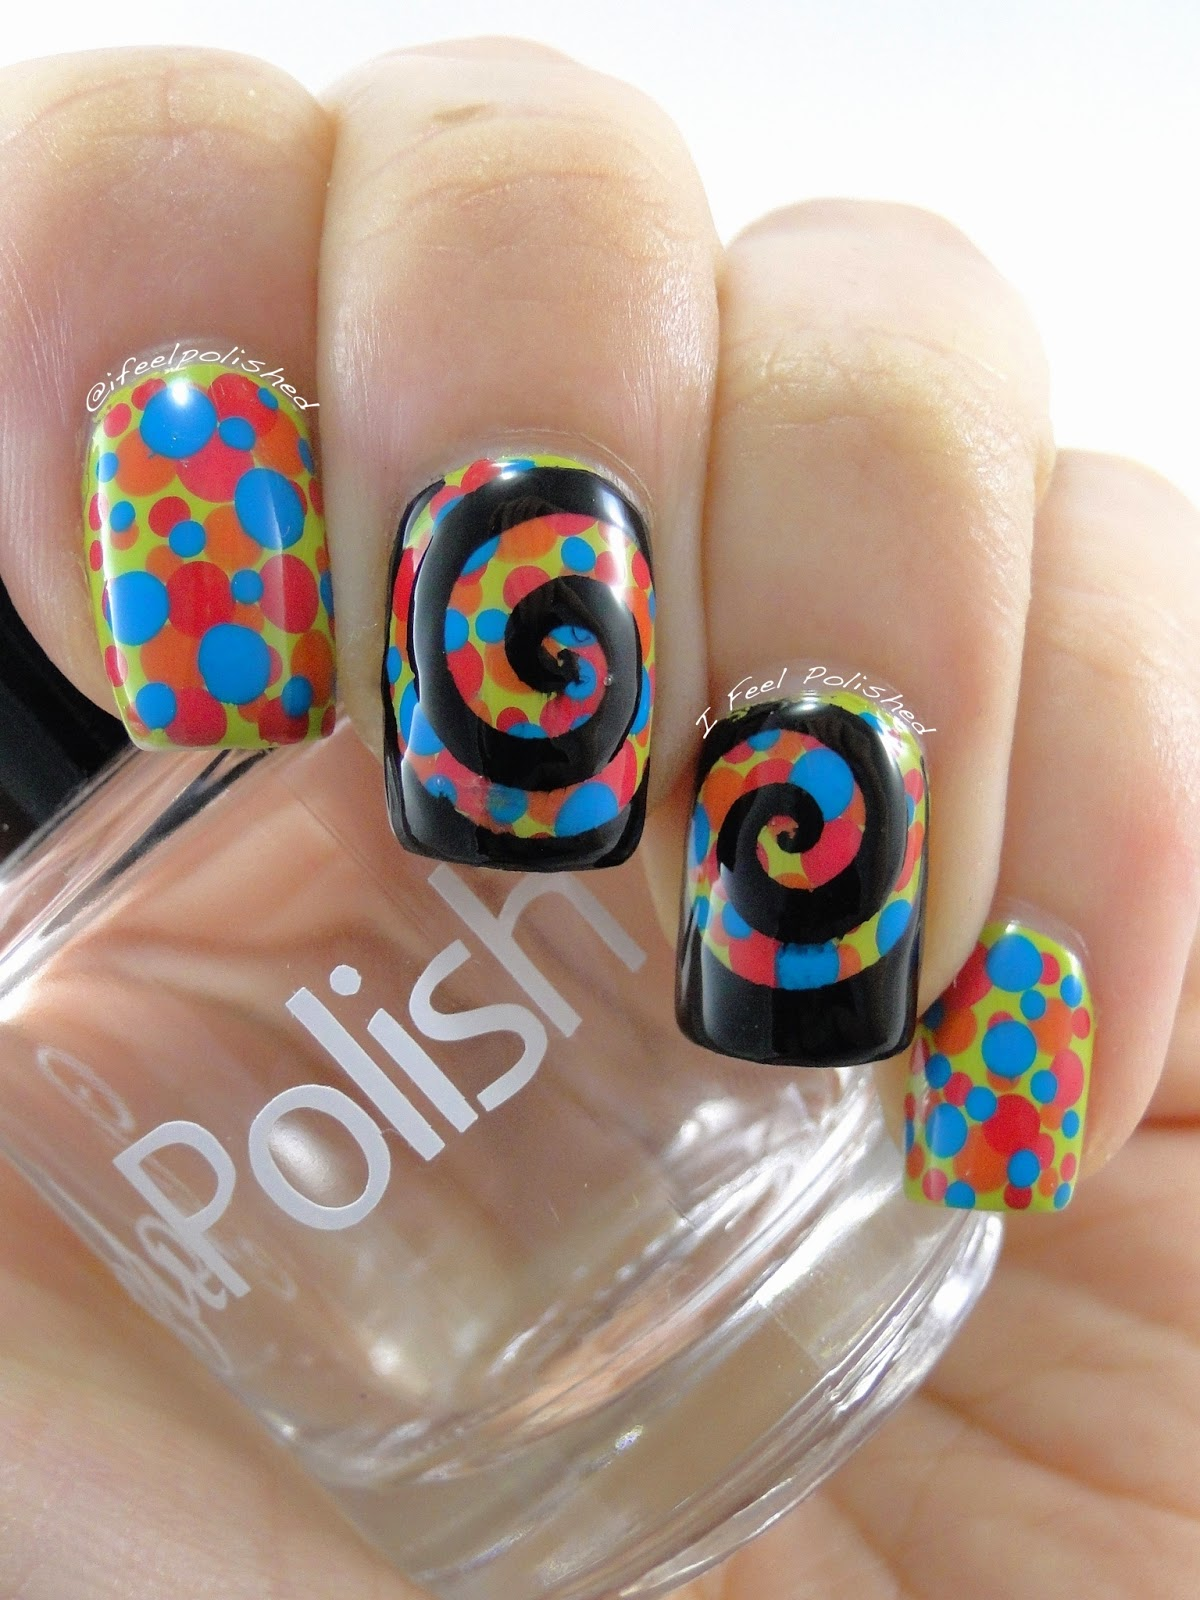 You Polish Swirl